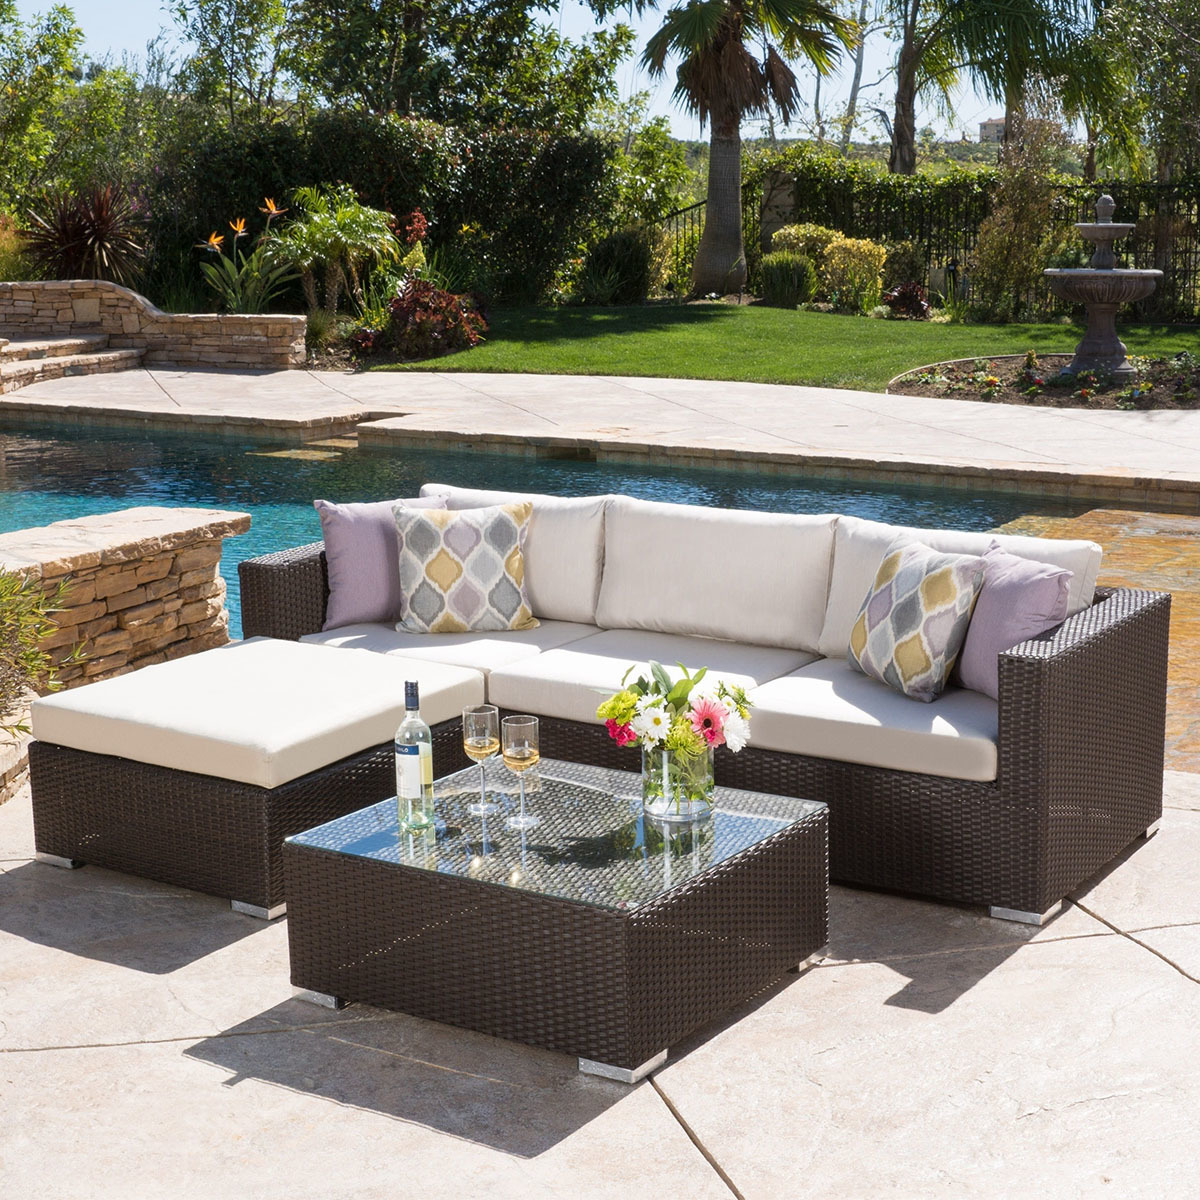 Overstock outdoor five-piece sectional set photo